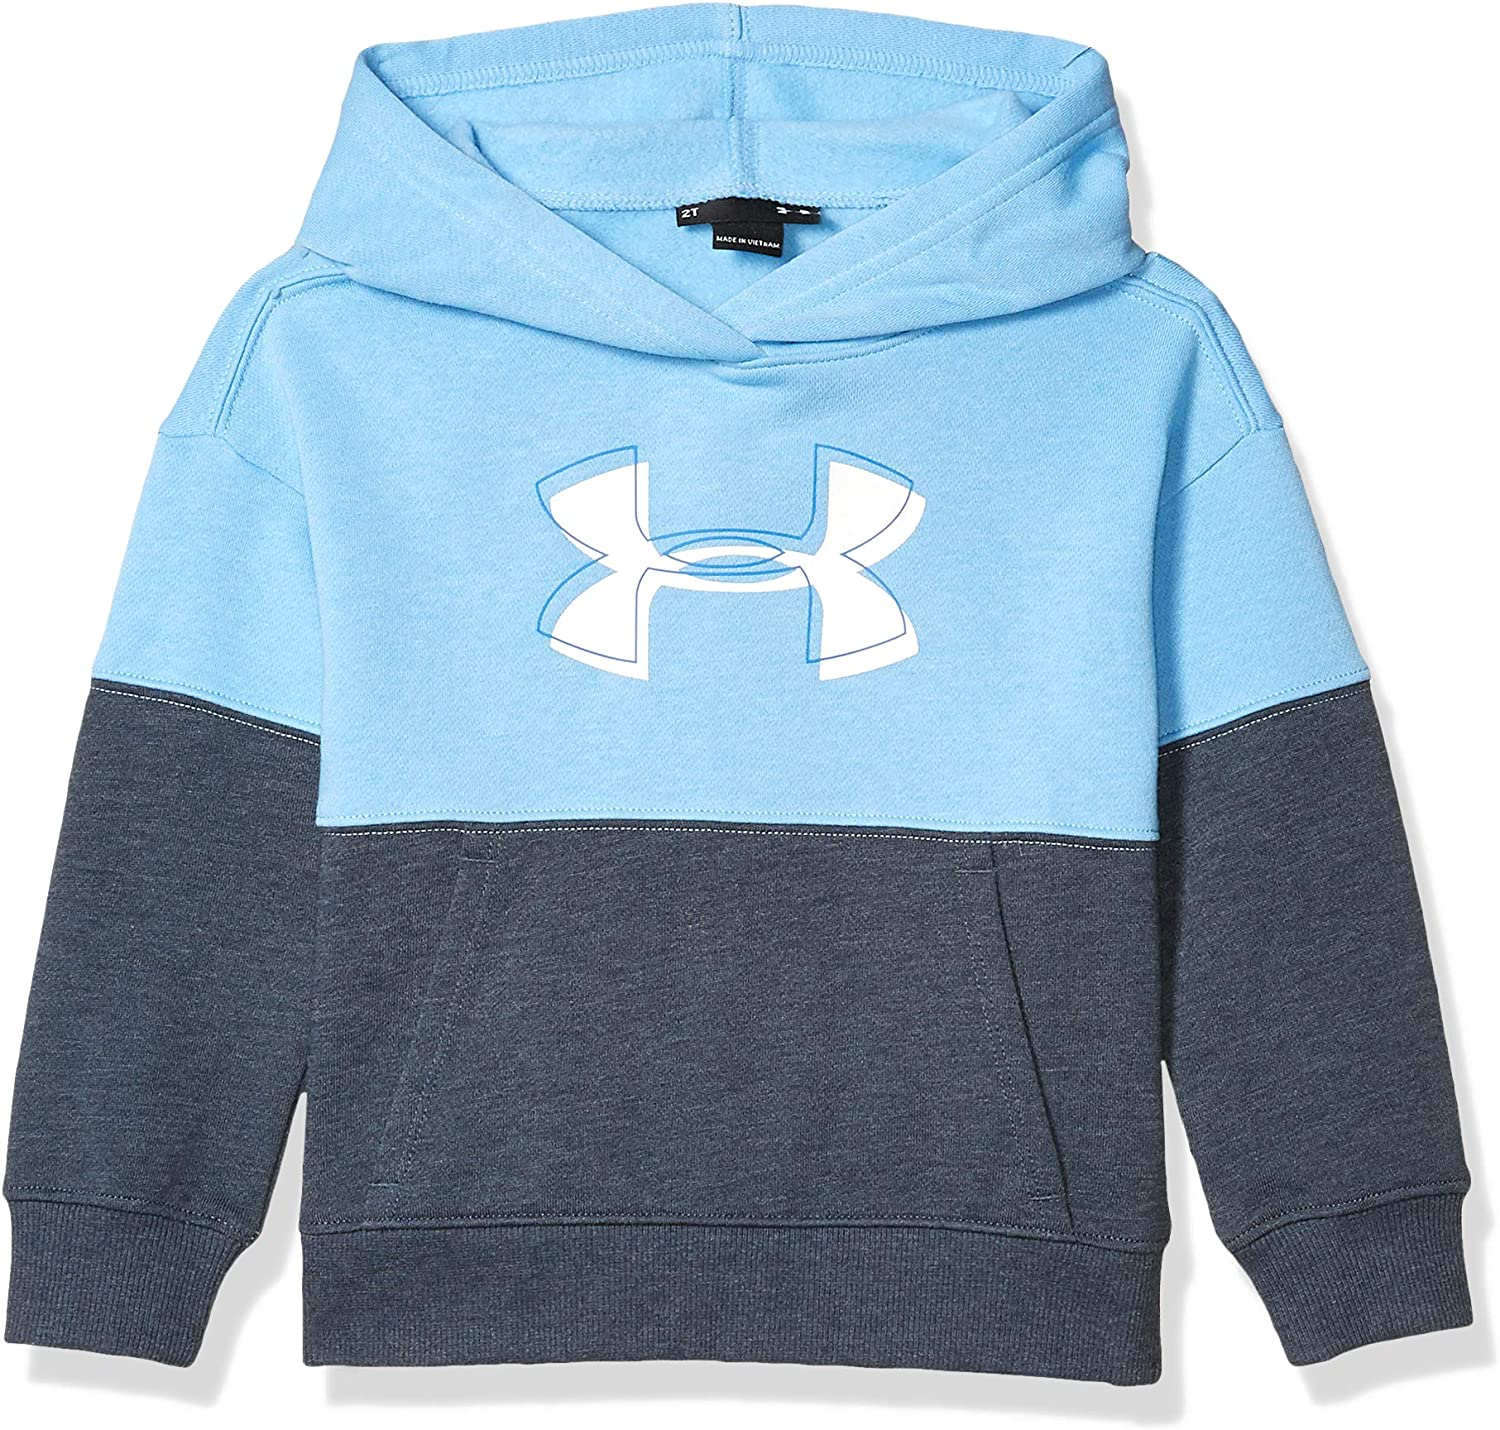 Under Armour Boys' Active Hoodie: Clothing